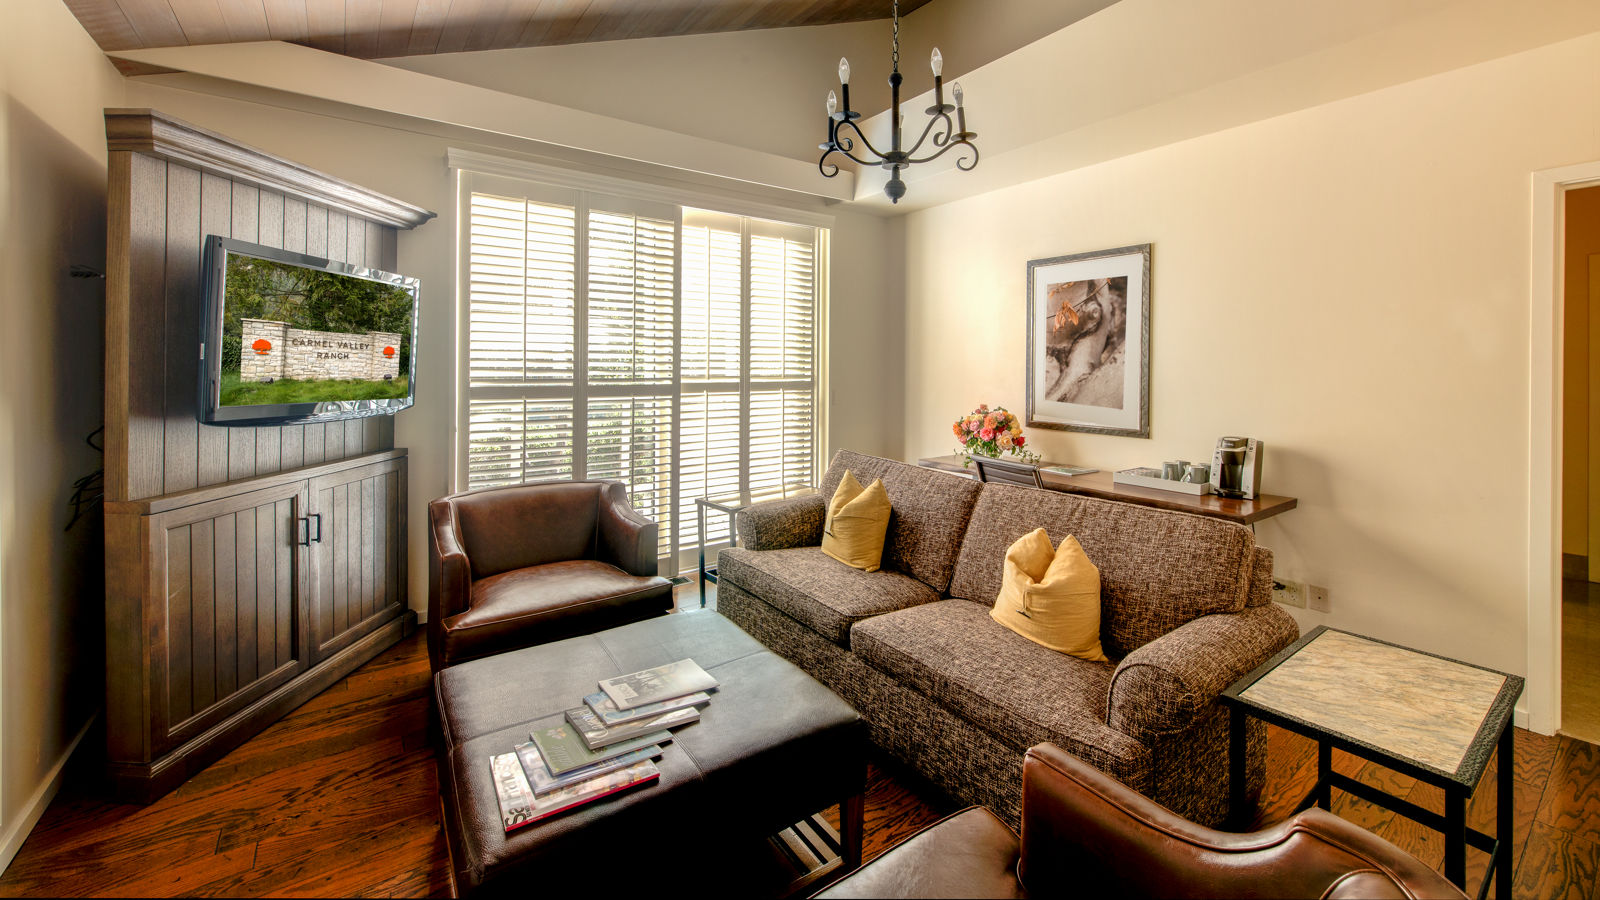 Carmel Valley Ranch_Accommodations_Live Oak Suite_Living Room_back